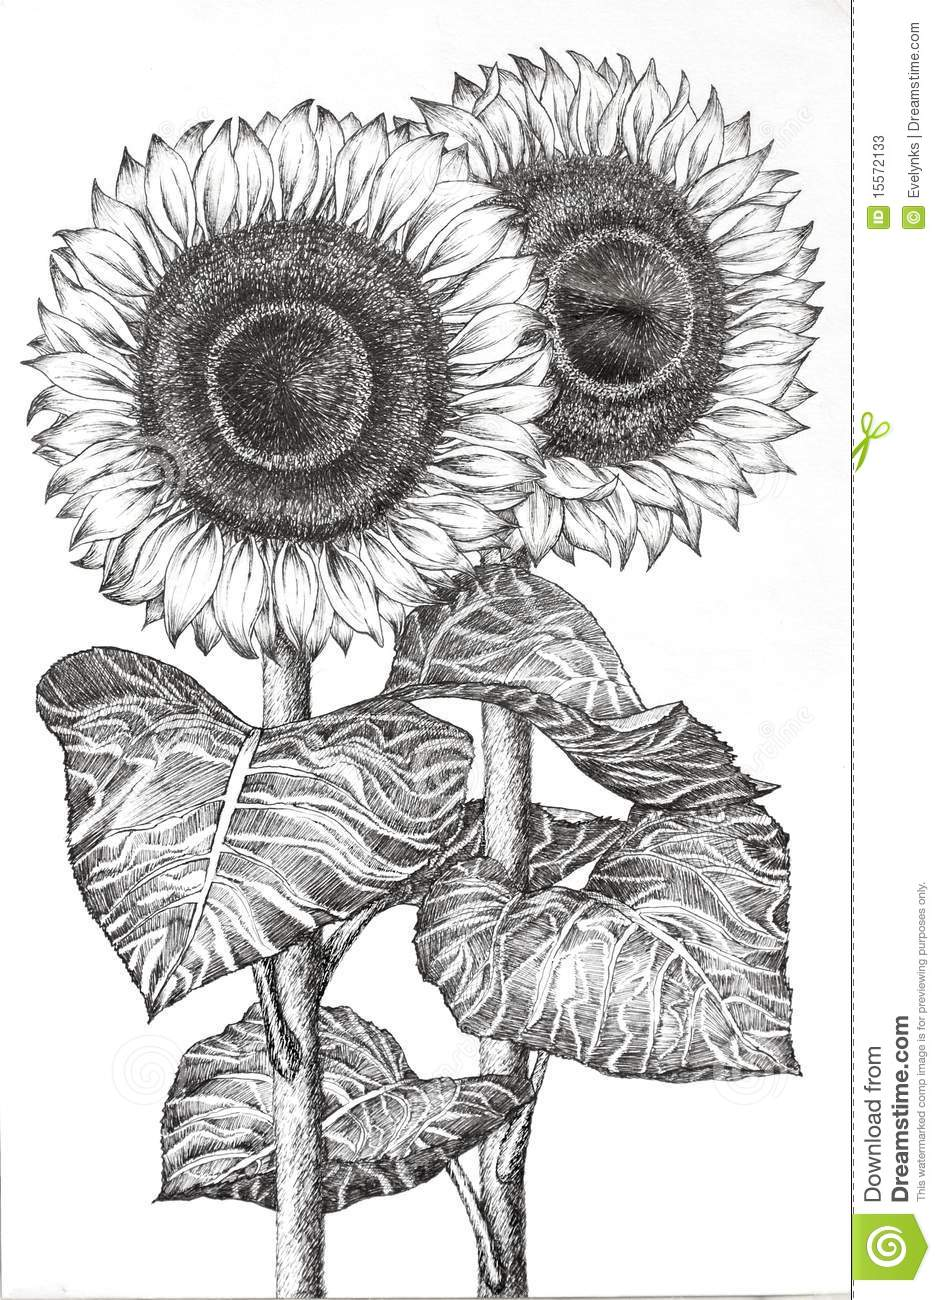 hand drawn image of two sunflowers stock illustration